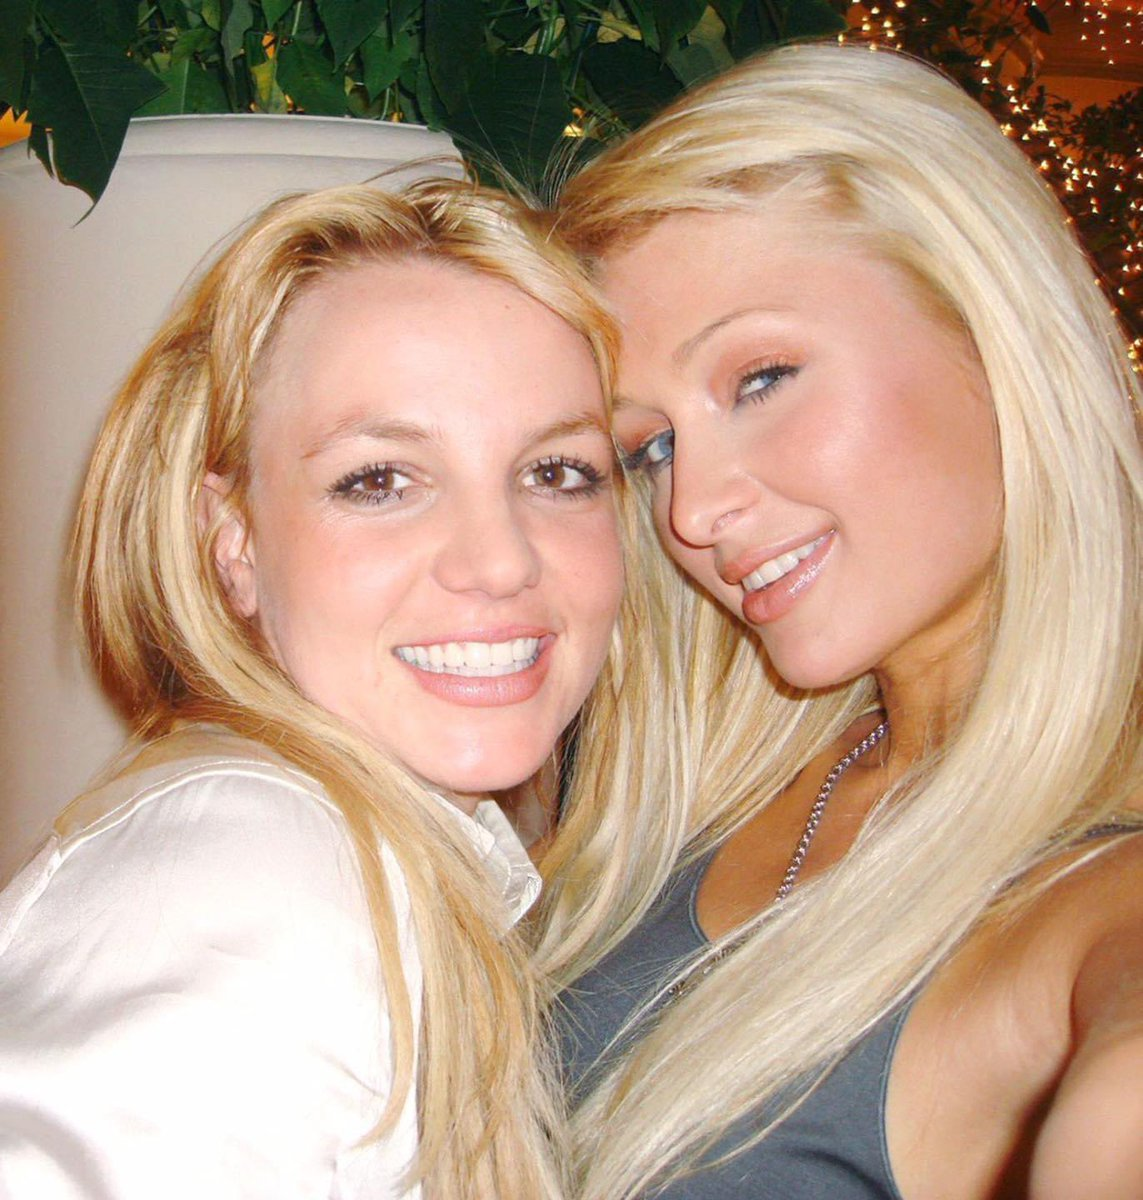 14 years ago, @britneyspears and I invented the selfie ❤️ #LegendsOnly